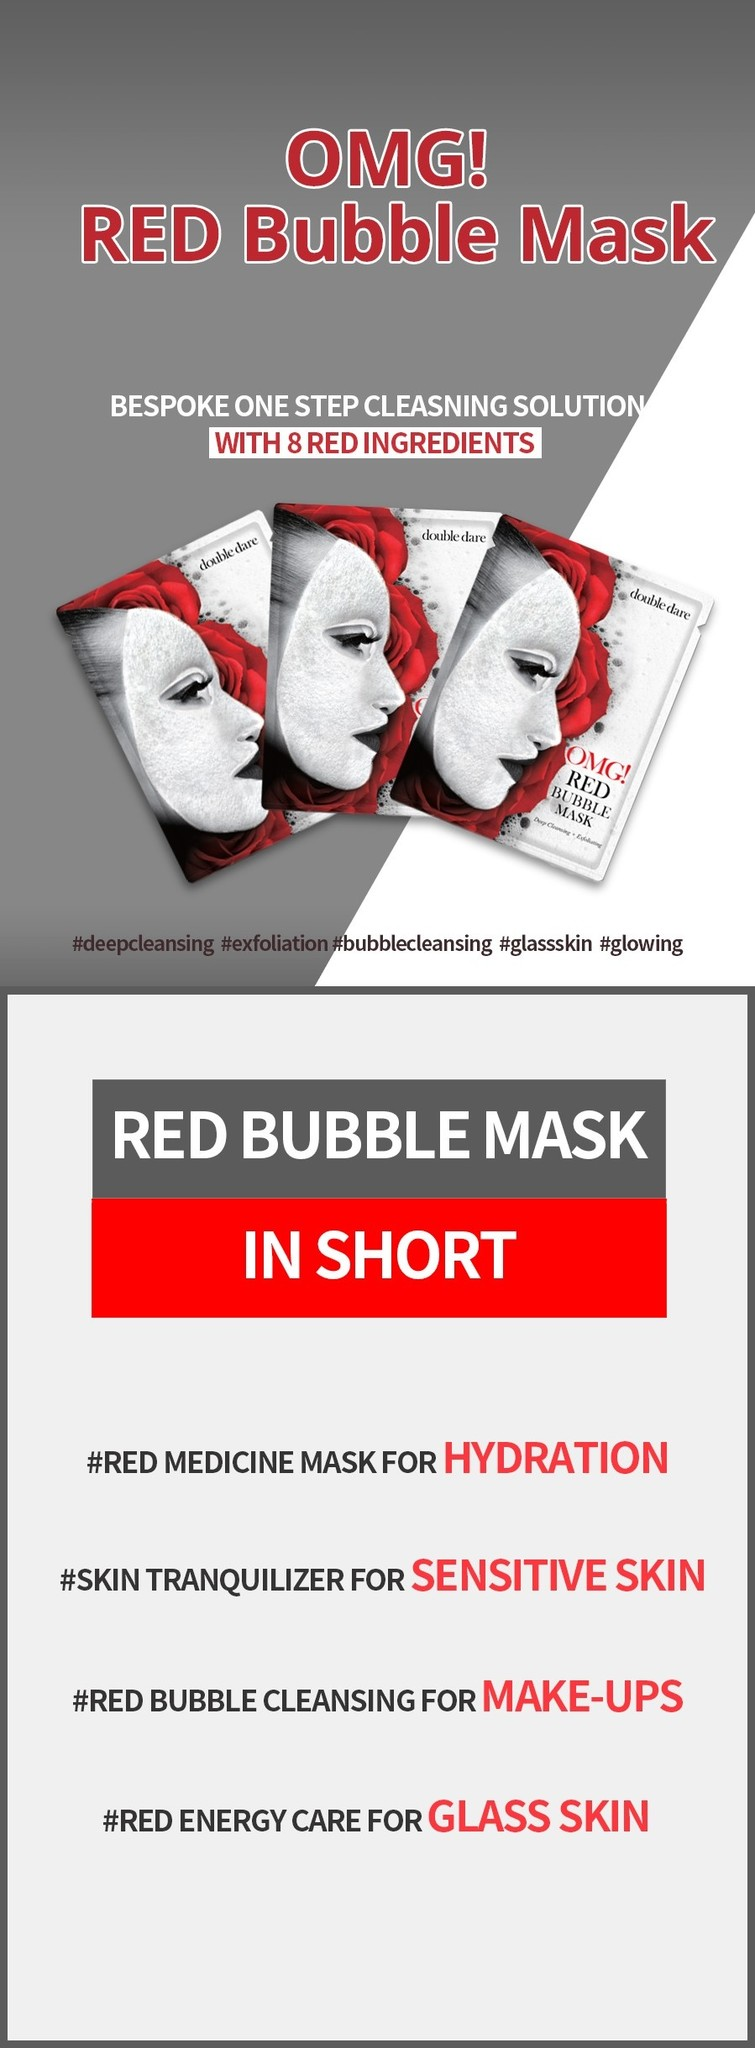 OMG! Red Bubble Mask-3